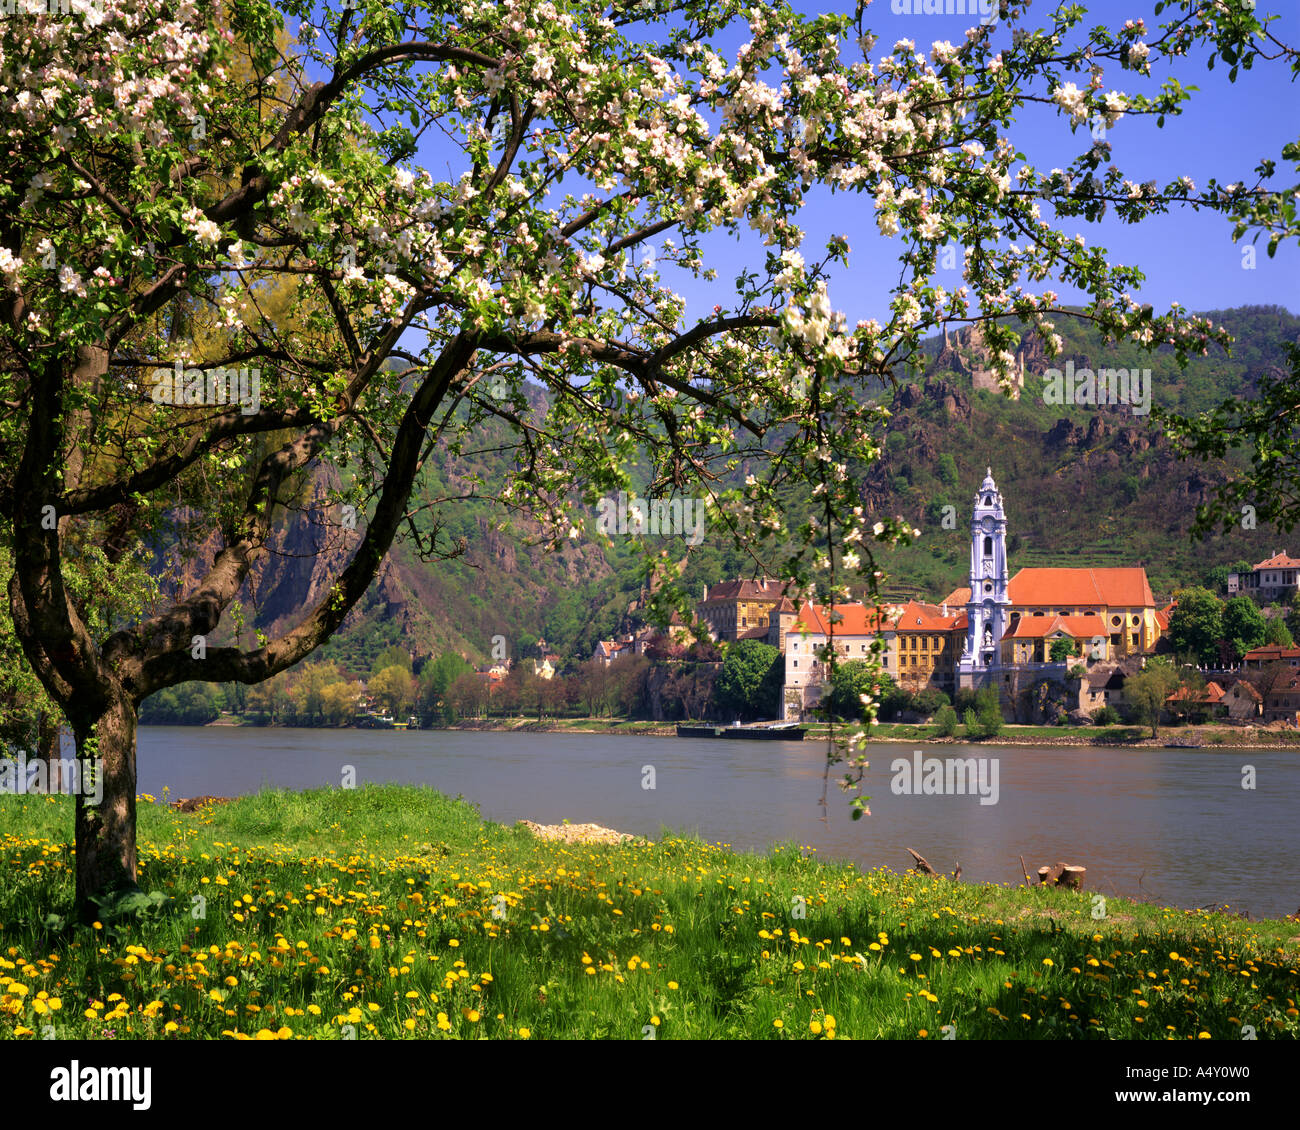 AT - LOWER AUSTRIA:  Dürnstein and River Danube - Stock Image